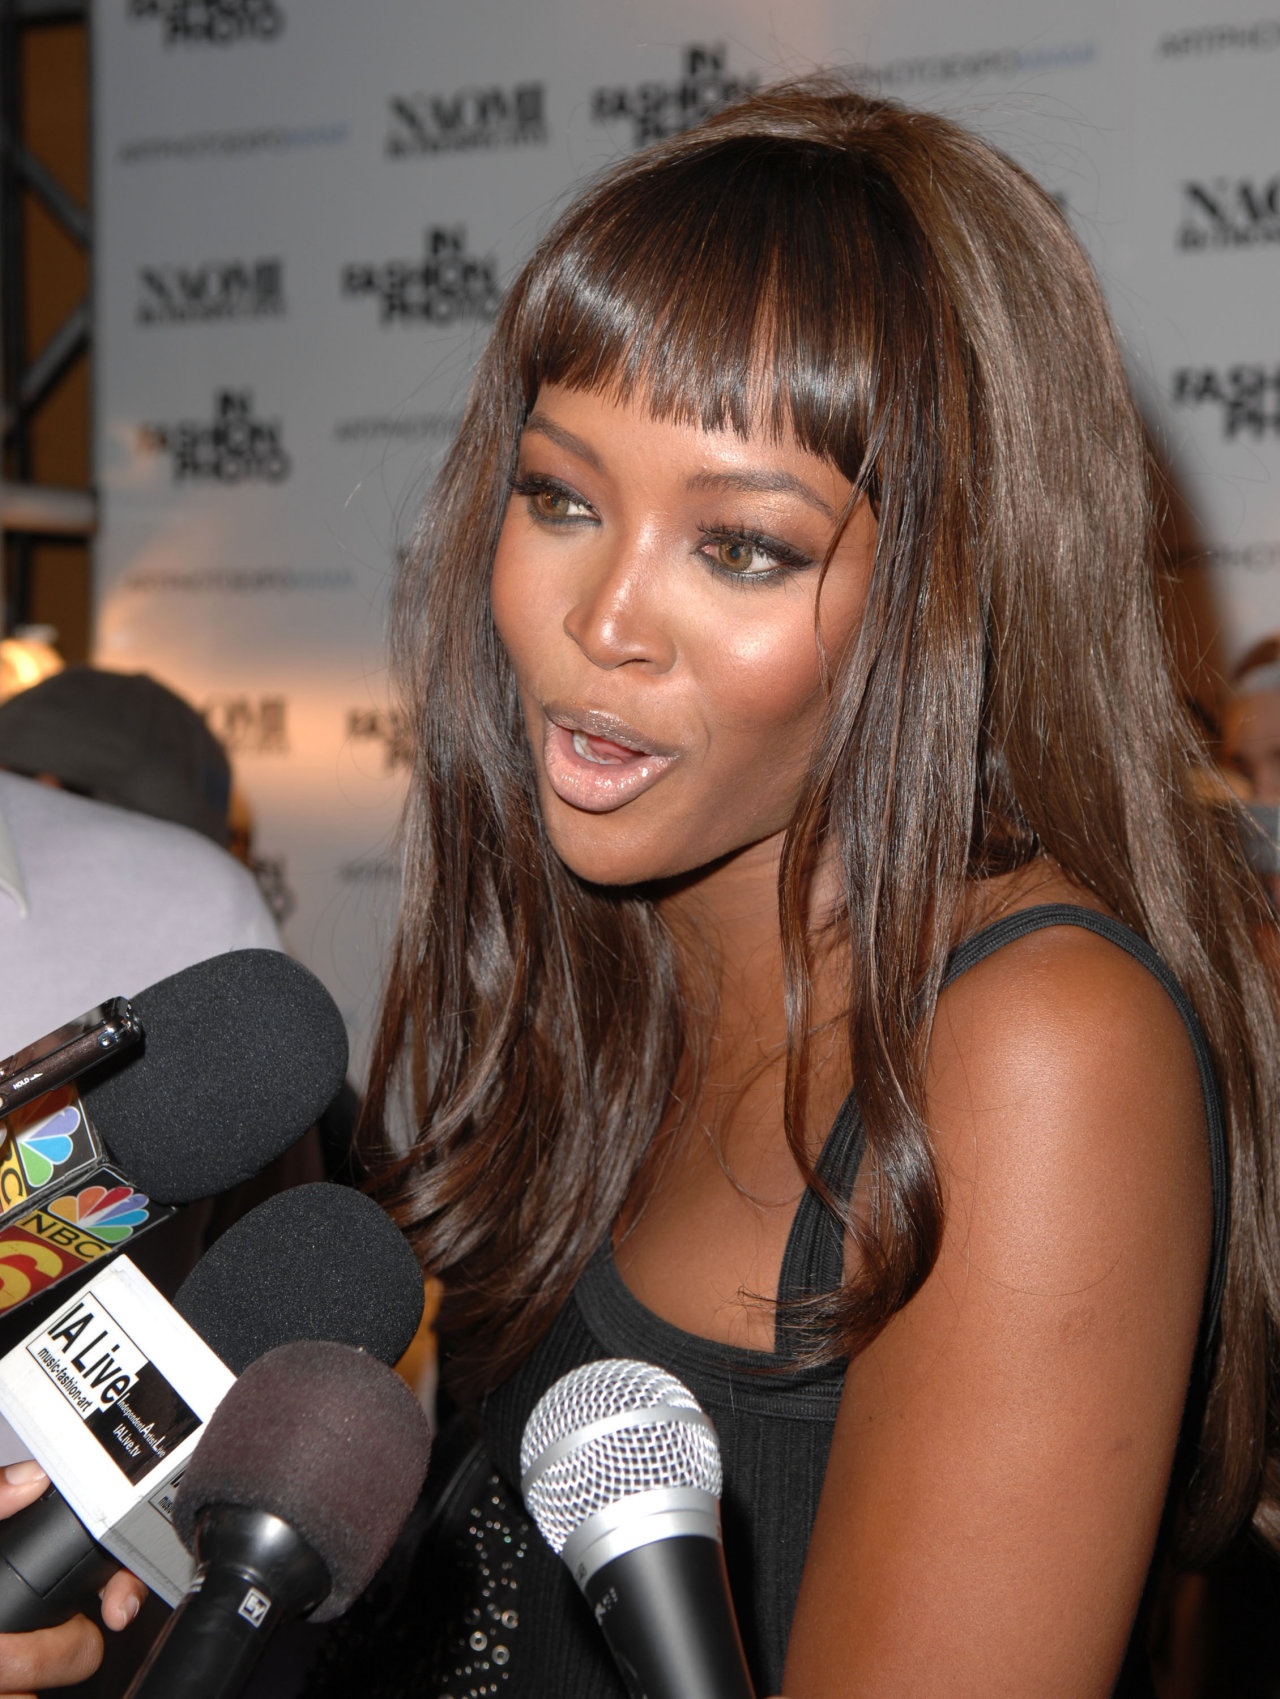 Naomi Campbell leaked wallpapers